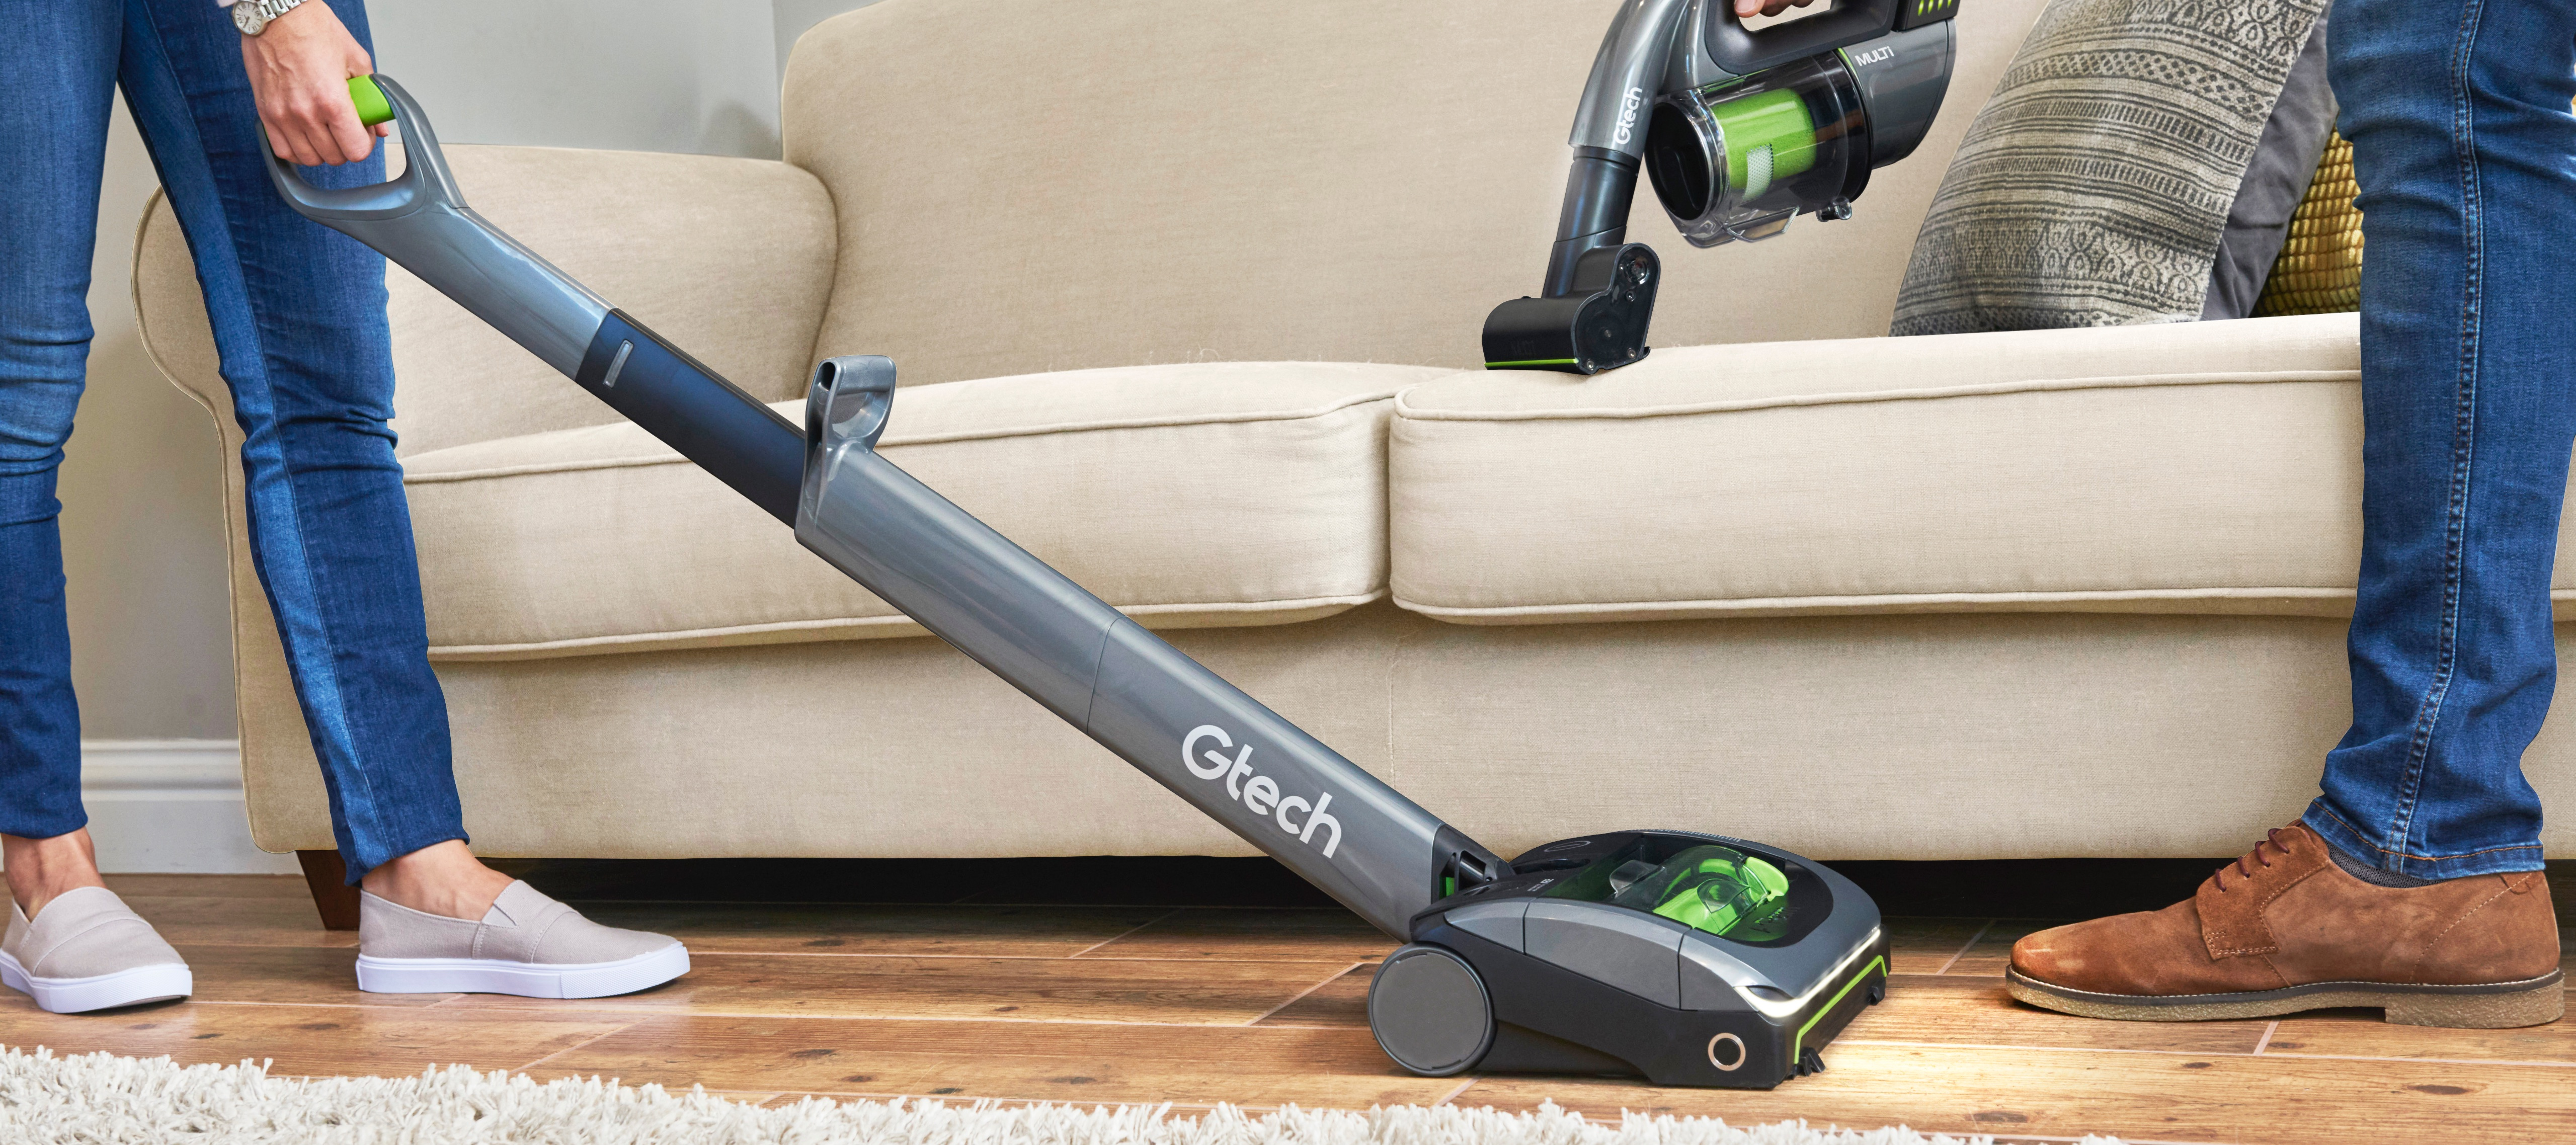 System lightweight cordless vacuum cleaner bundle